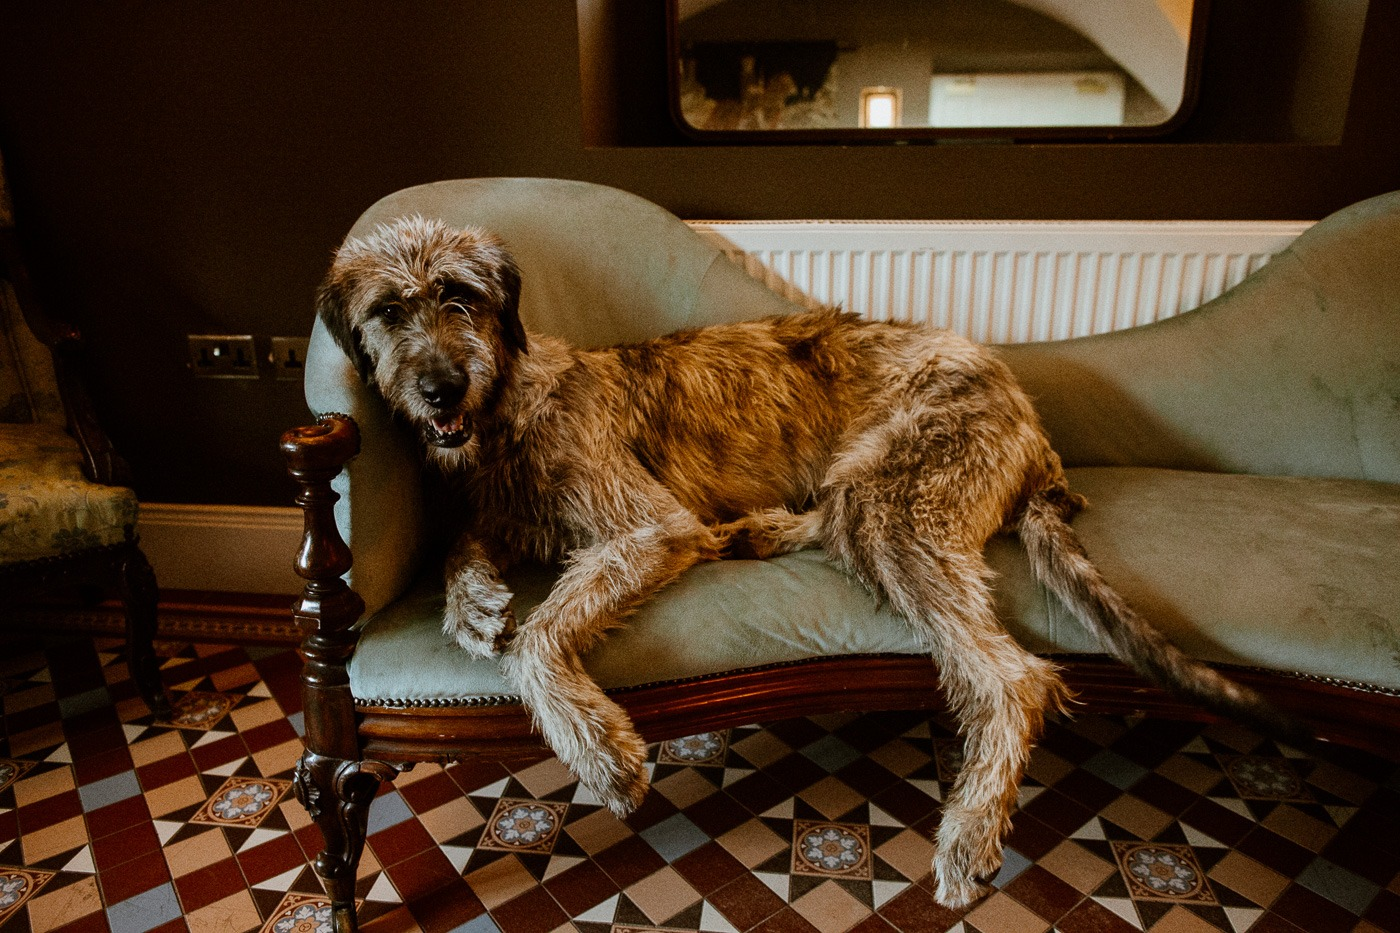 A large brown dog lying on a rug